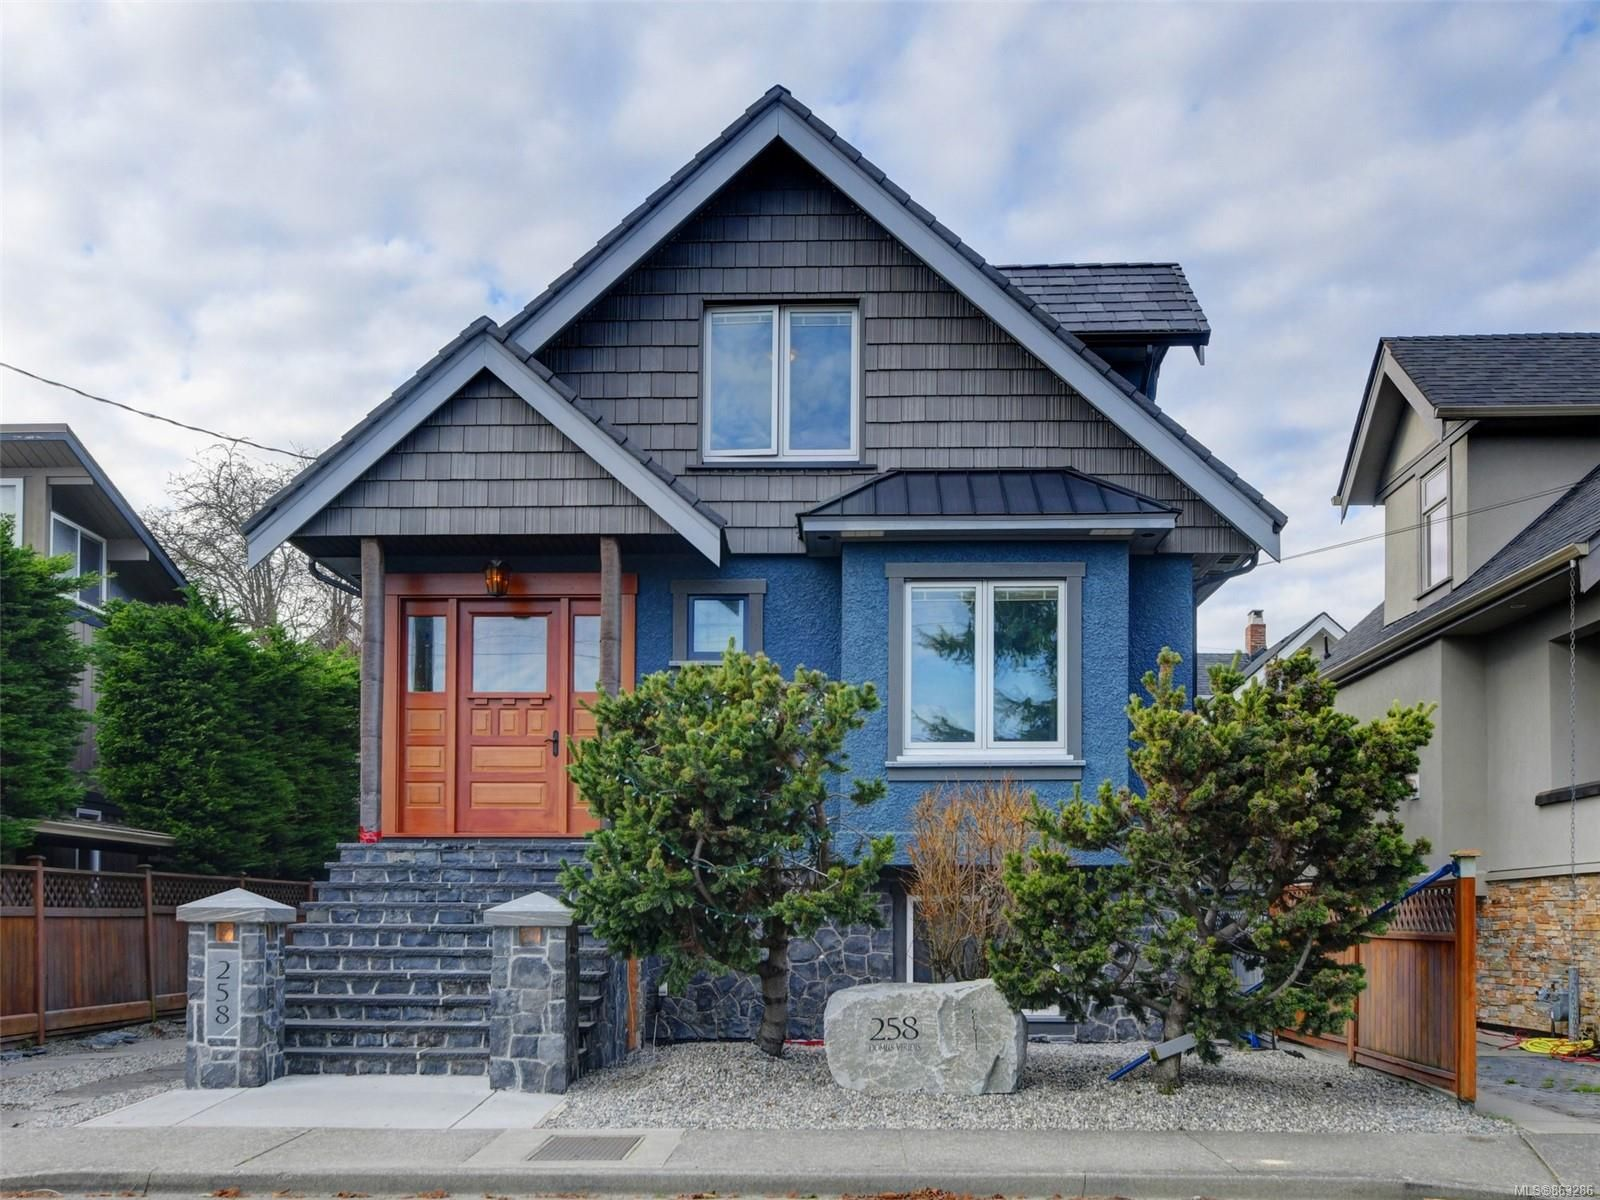 Main Photo: 258 Richmond Ave in : Vi Fairfield East House for sale (Victoria)  : MLS®# 863286